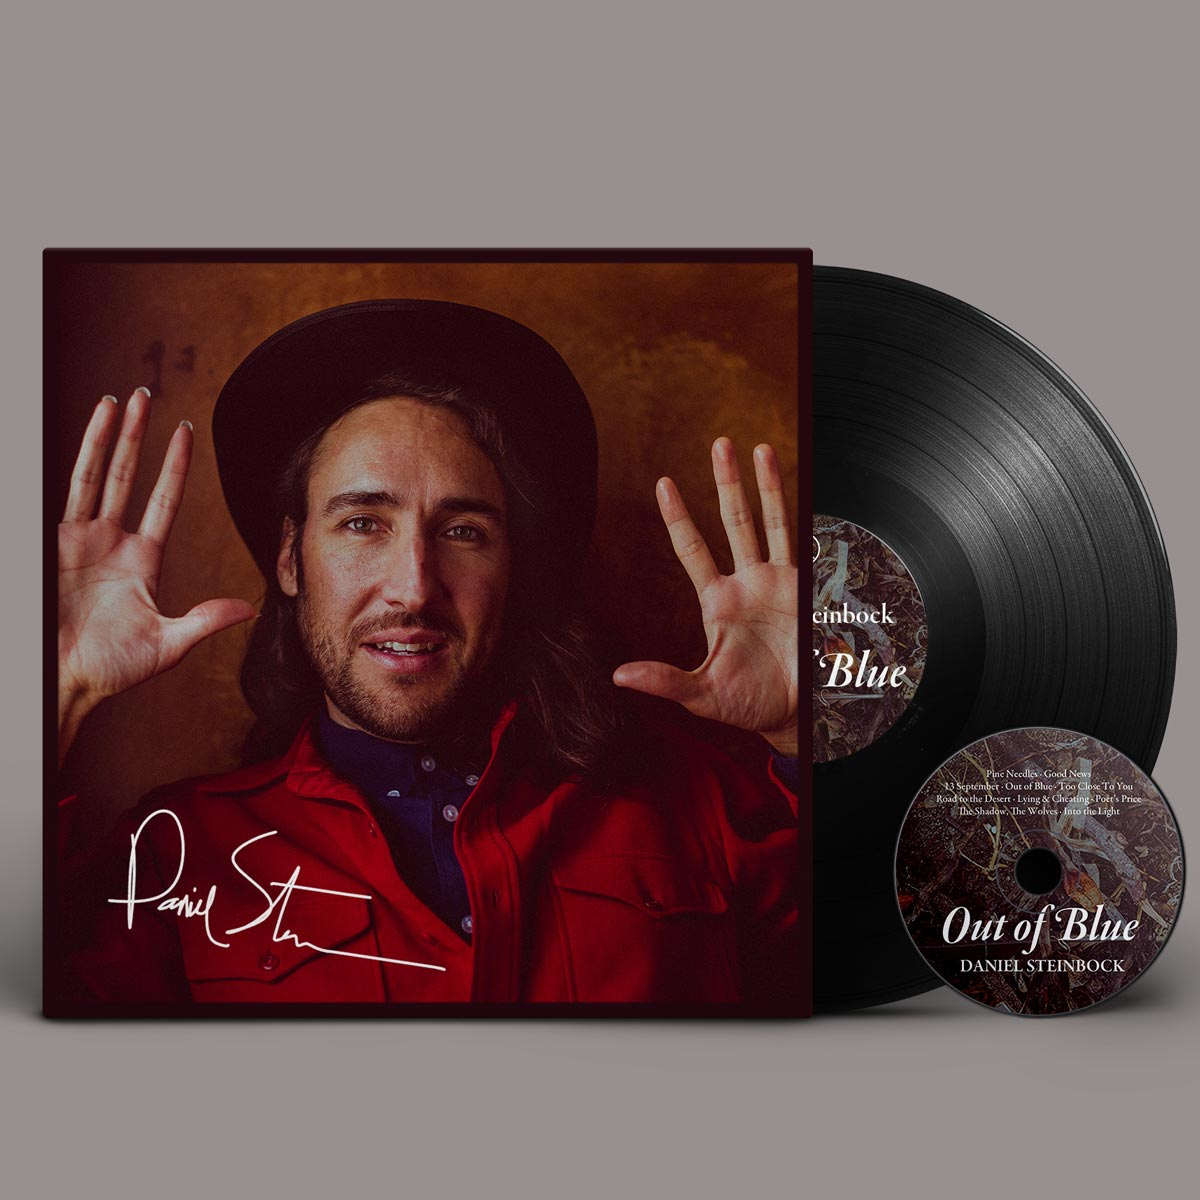 Daniel Steinbock - Out of Blue vinyl album signed